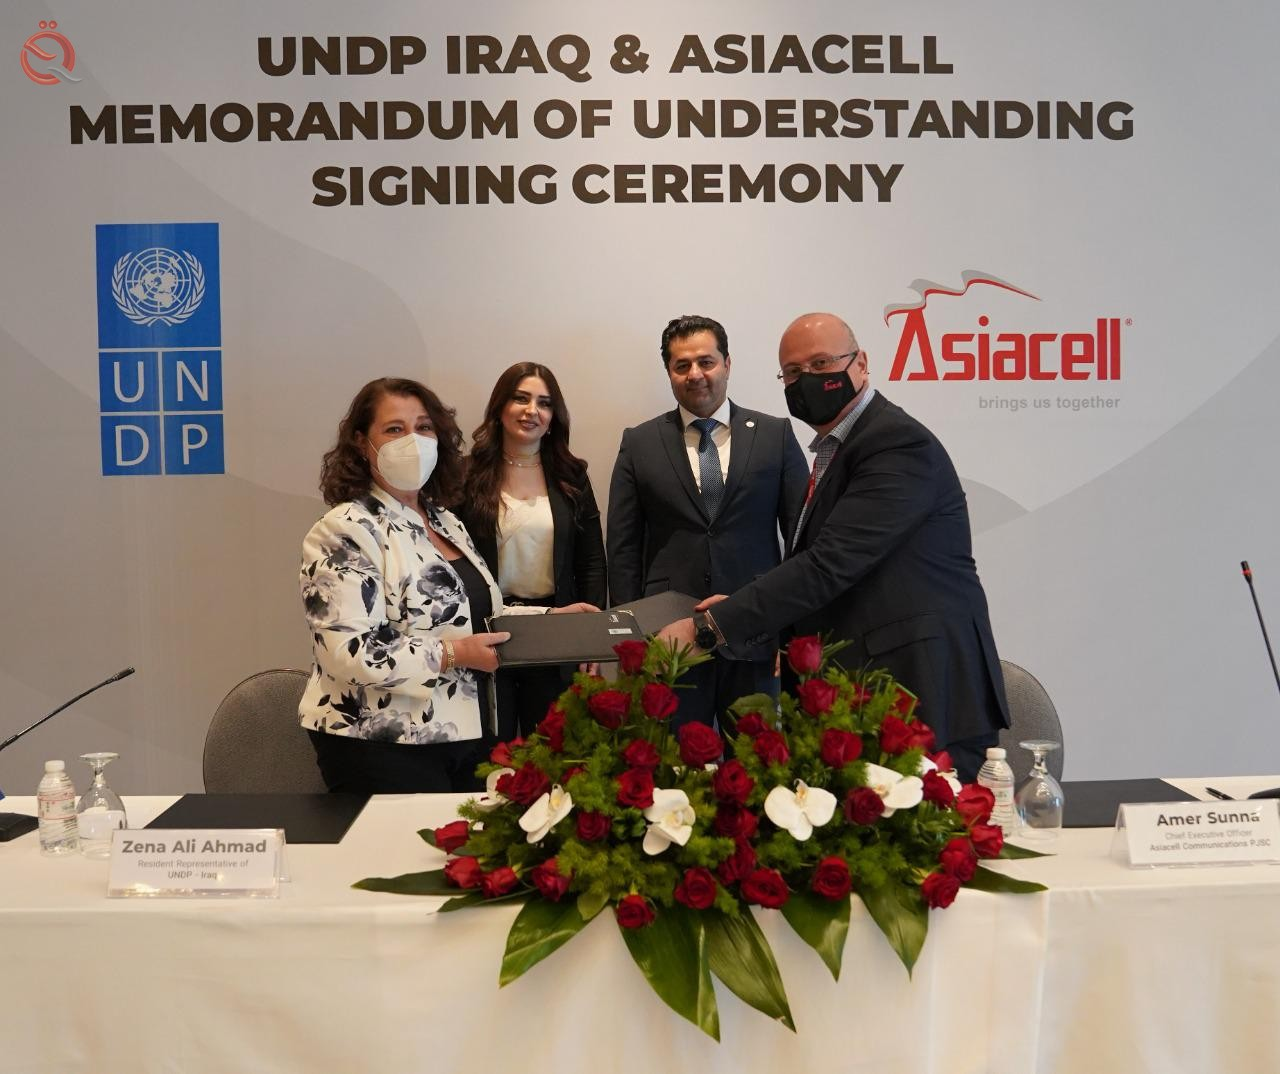 The United Nations Development Program (UNDP) and Asiacell are joining forces to support youth employment and entrepreneurs in Iraq 27712